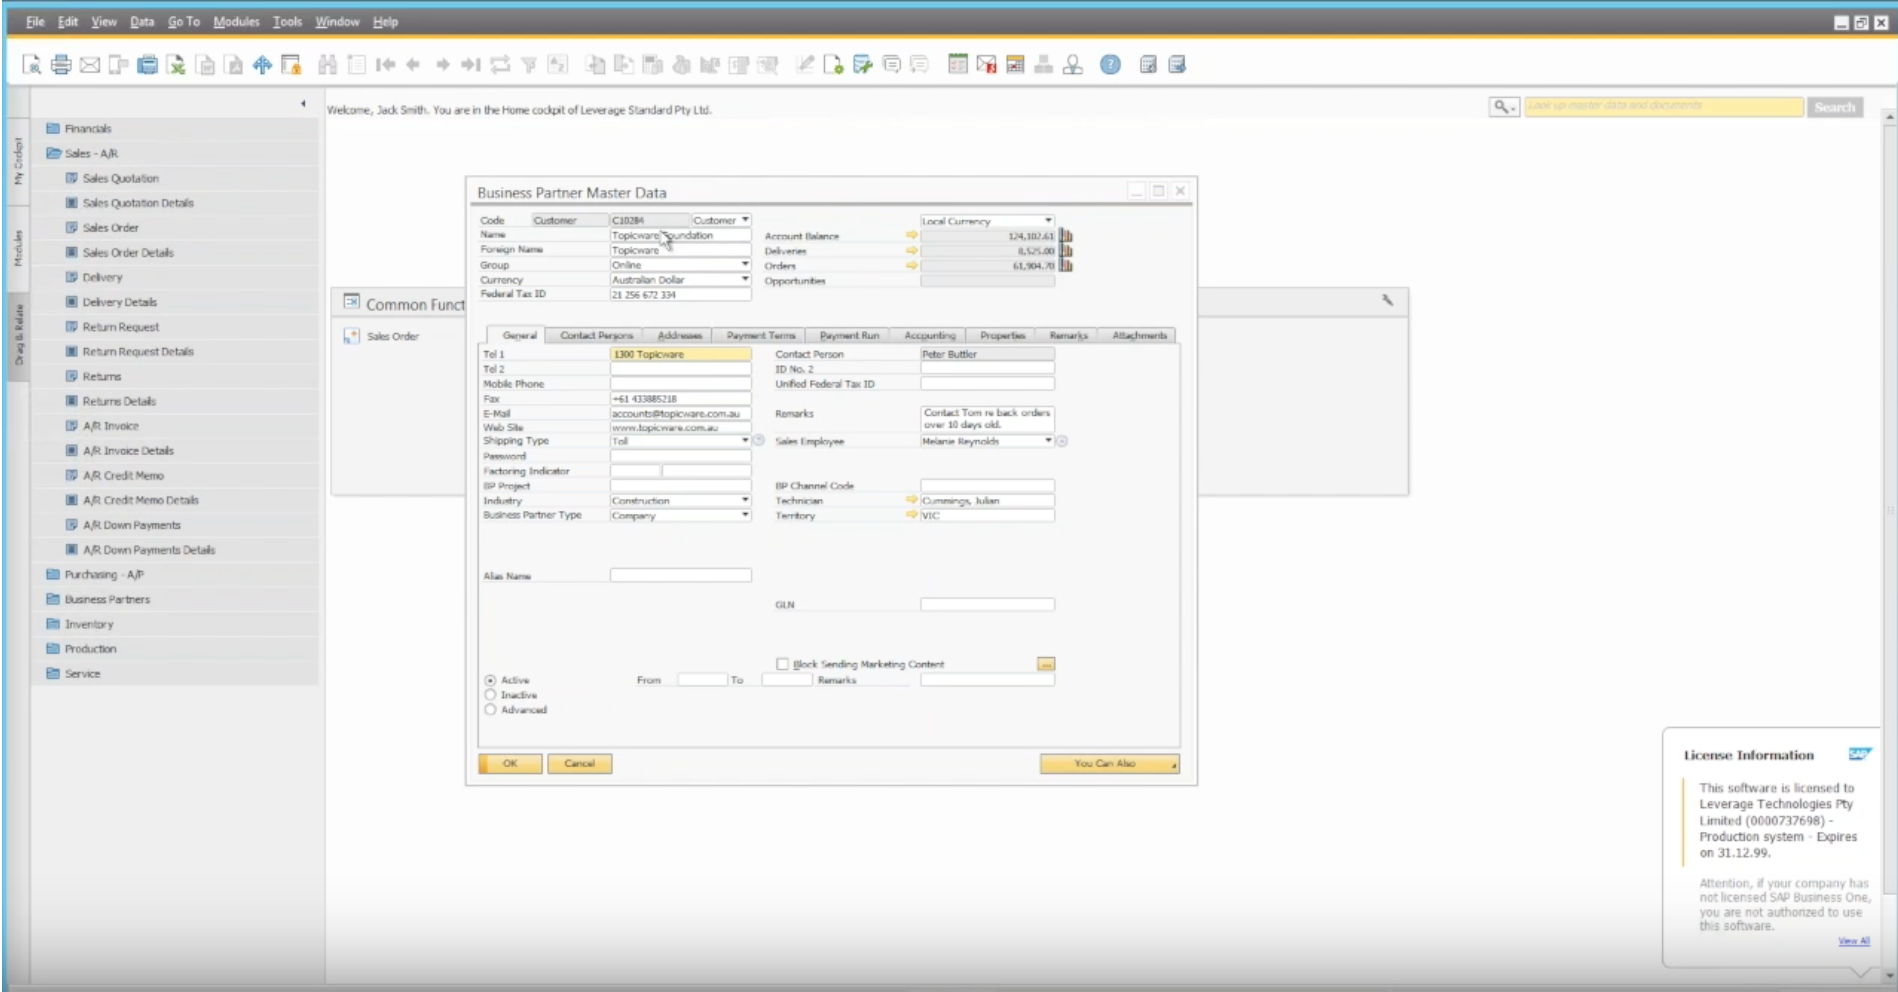 Managing sales orders in SAP Business One